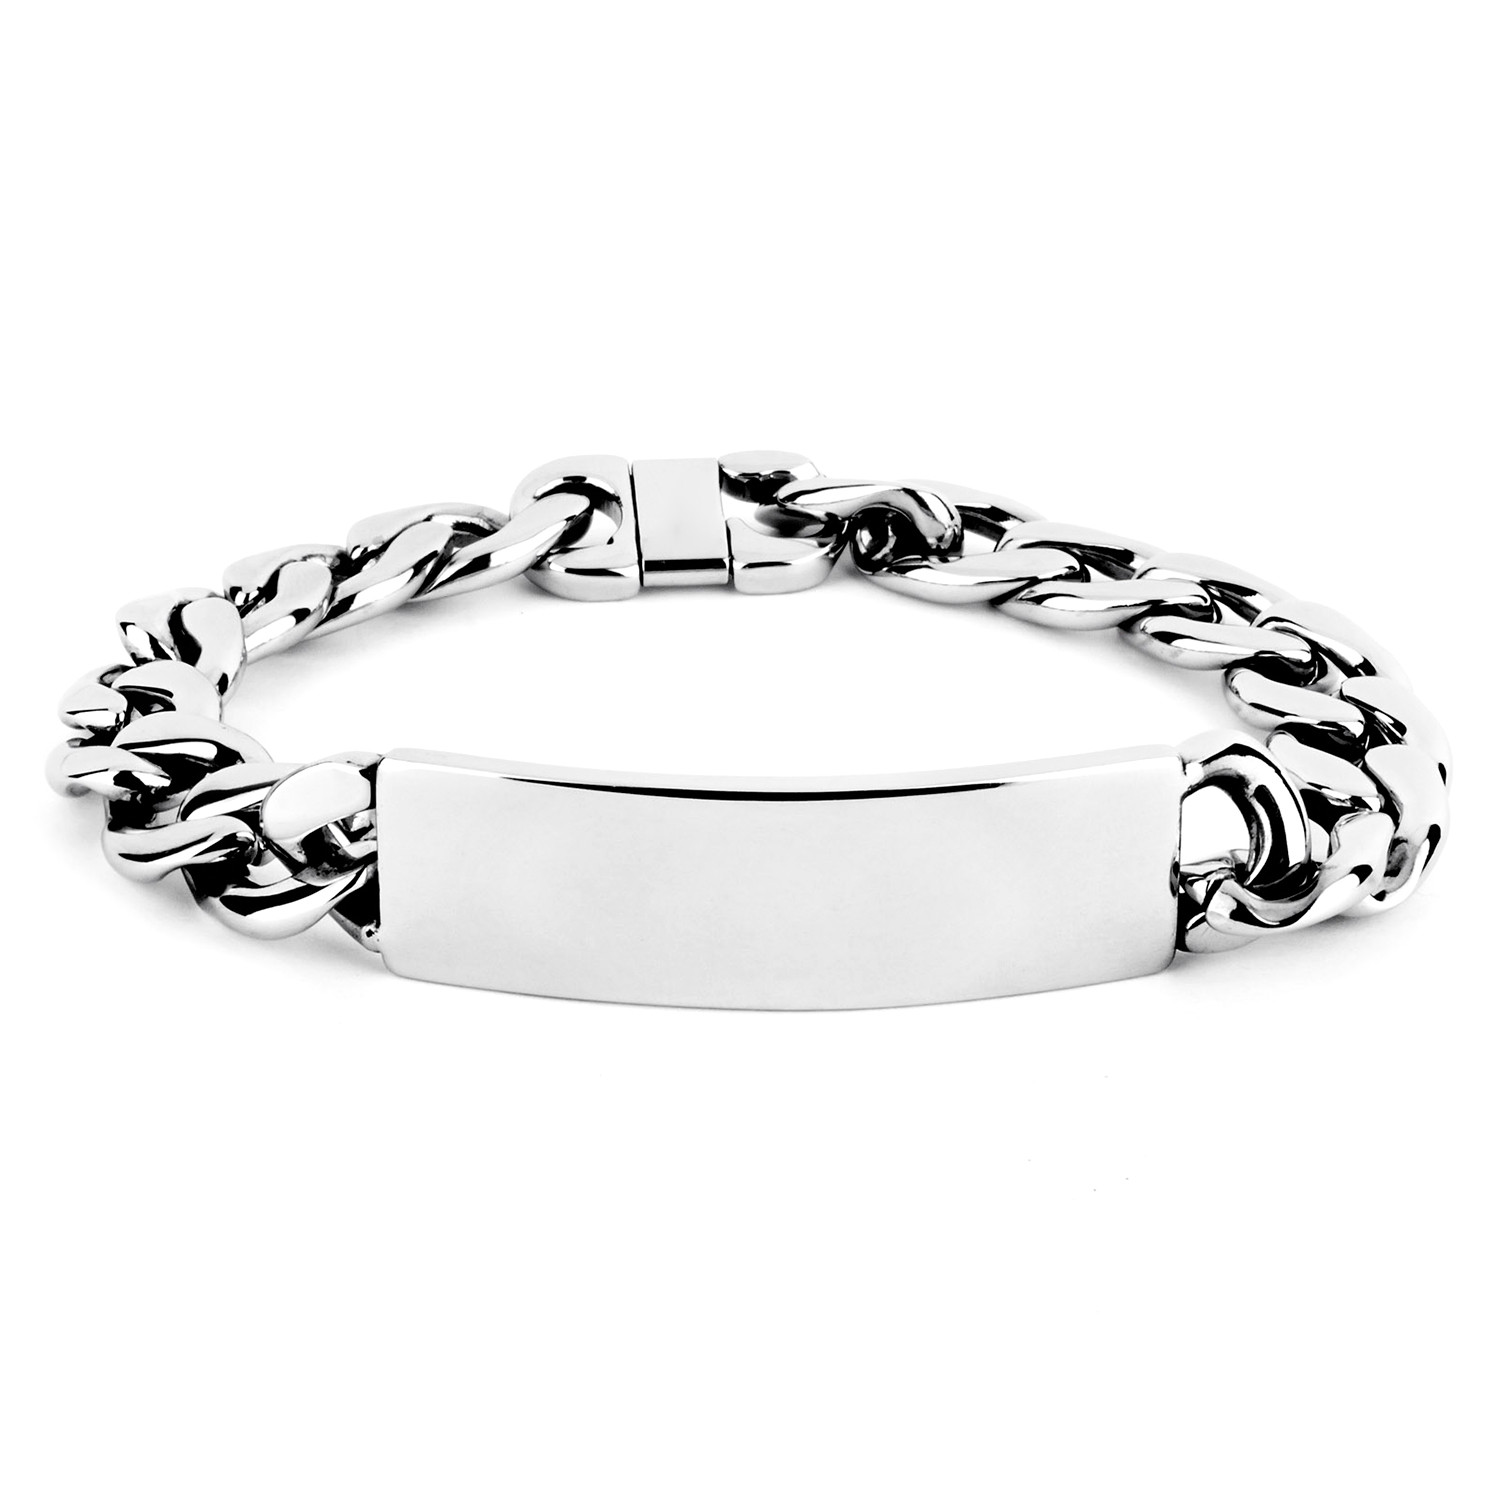 West Coast Jewelry Mens Stainless Steel Polished Curb Chain ID Bracelet